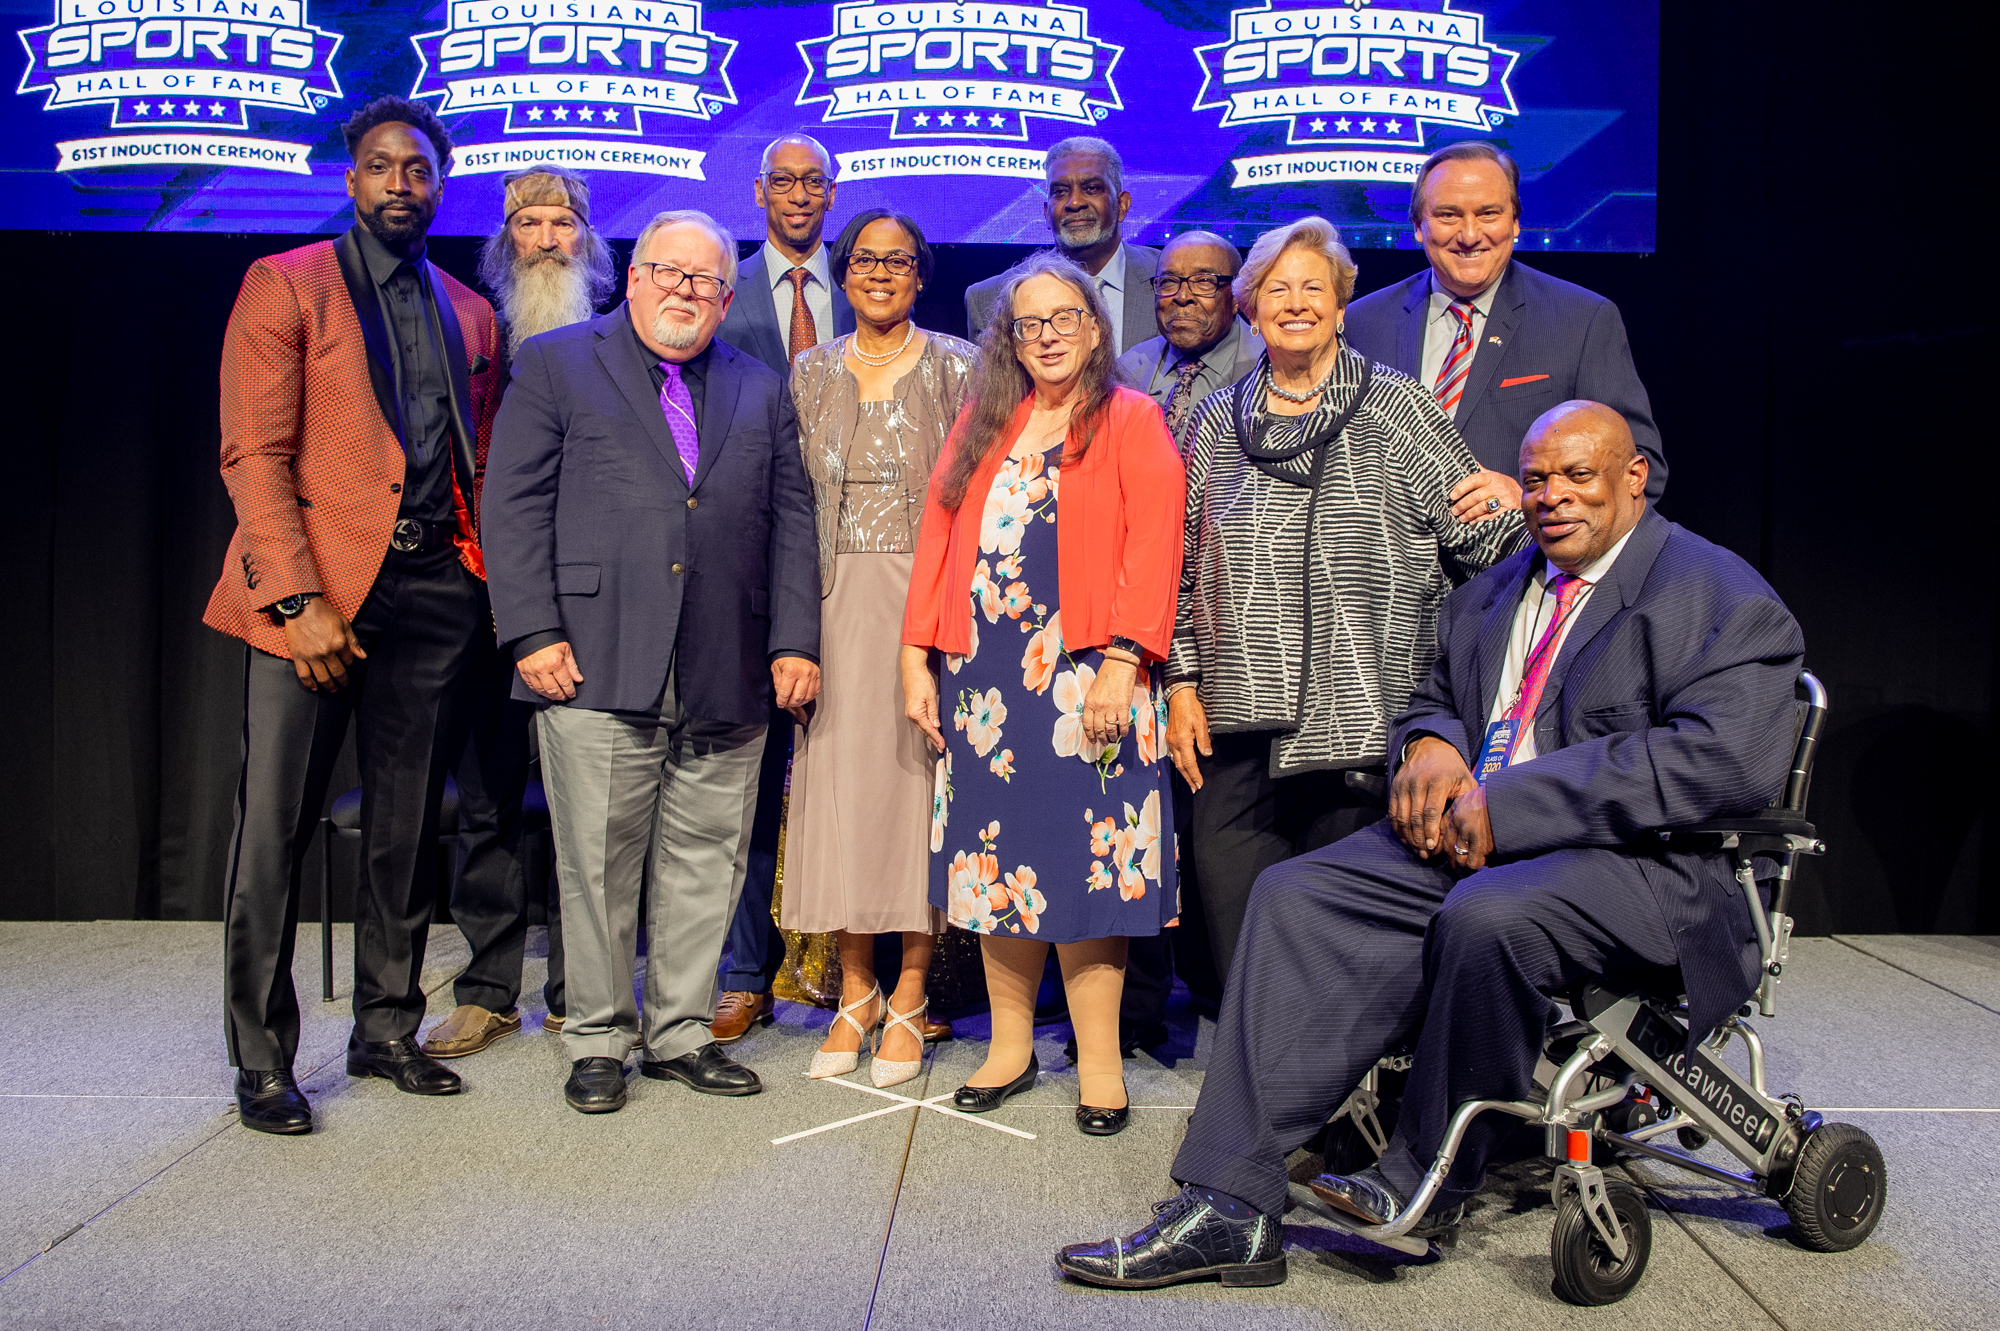 View the 2020 Induction Ceremony Program online